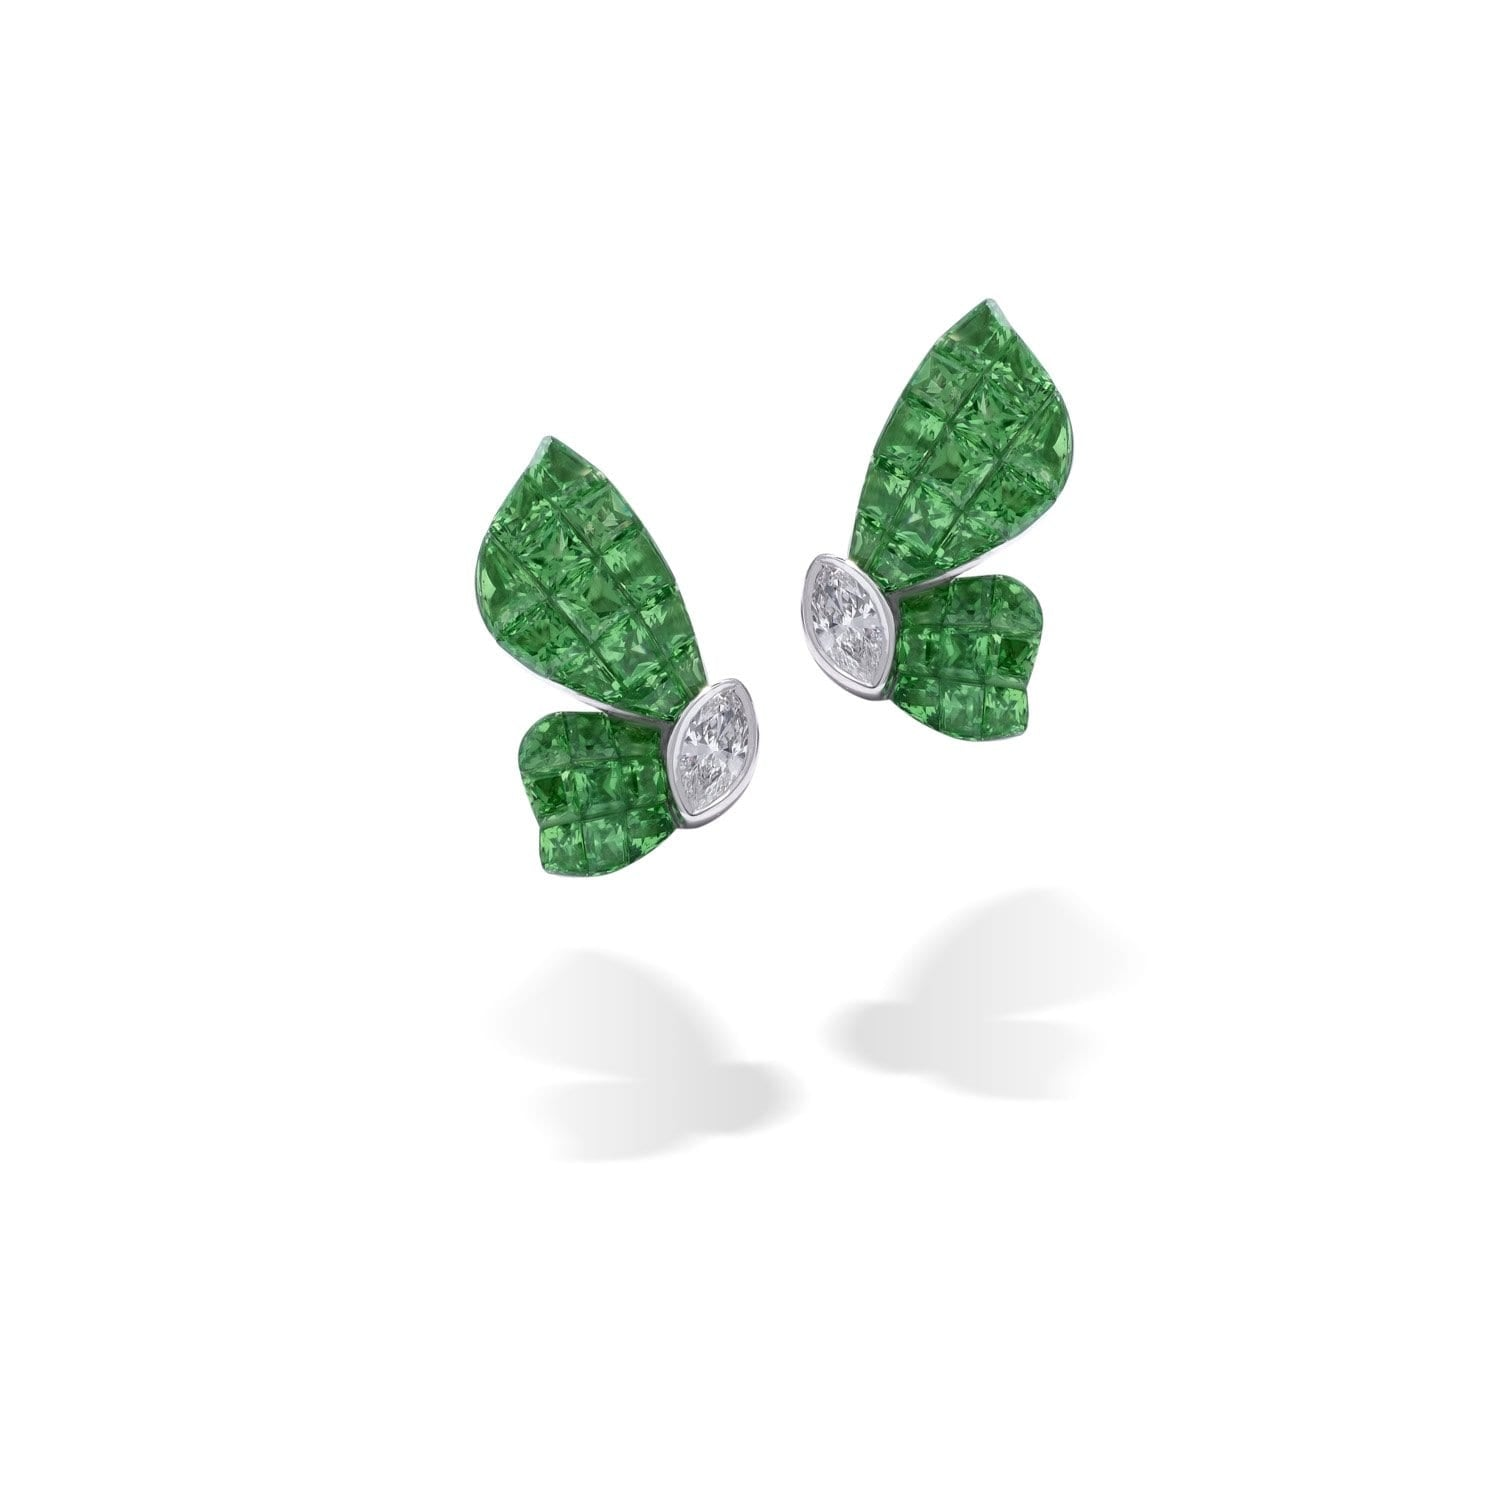 MADEMOISELLE B., PETIT Earrings